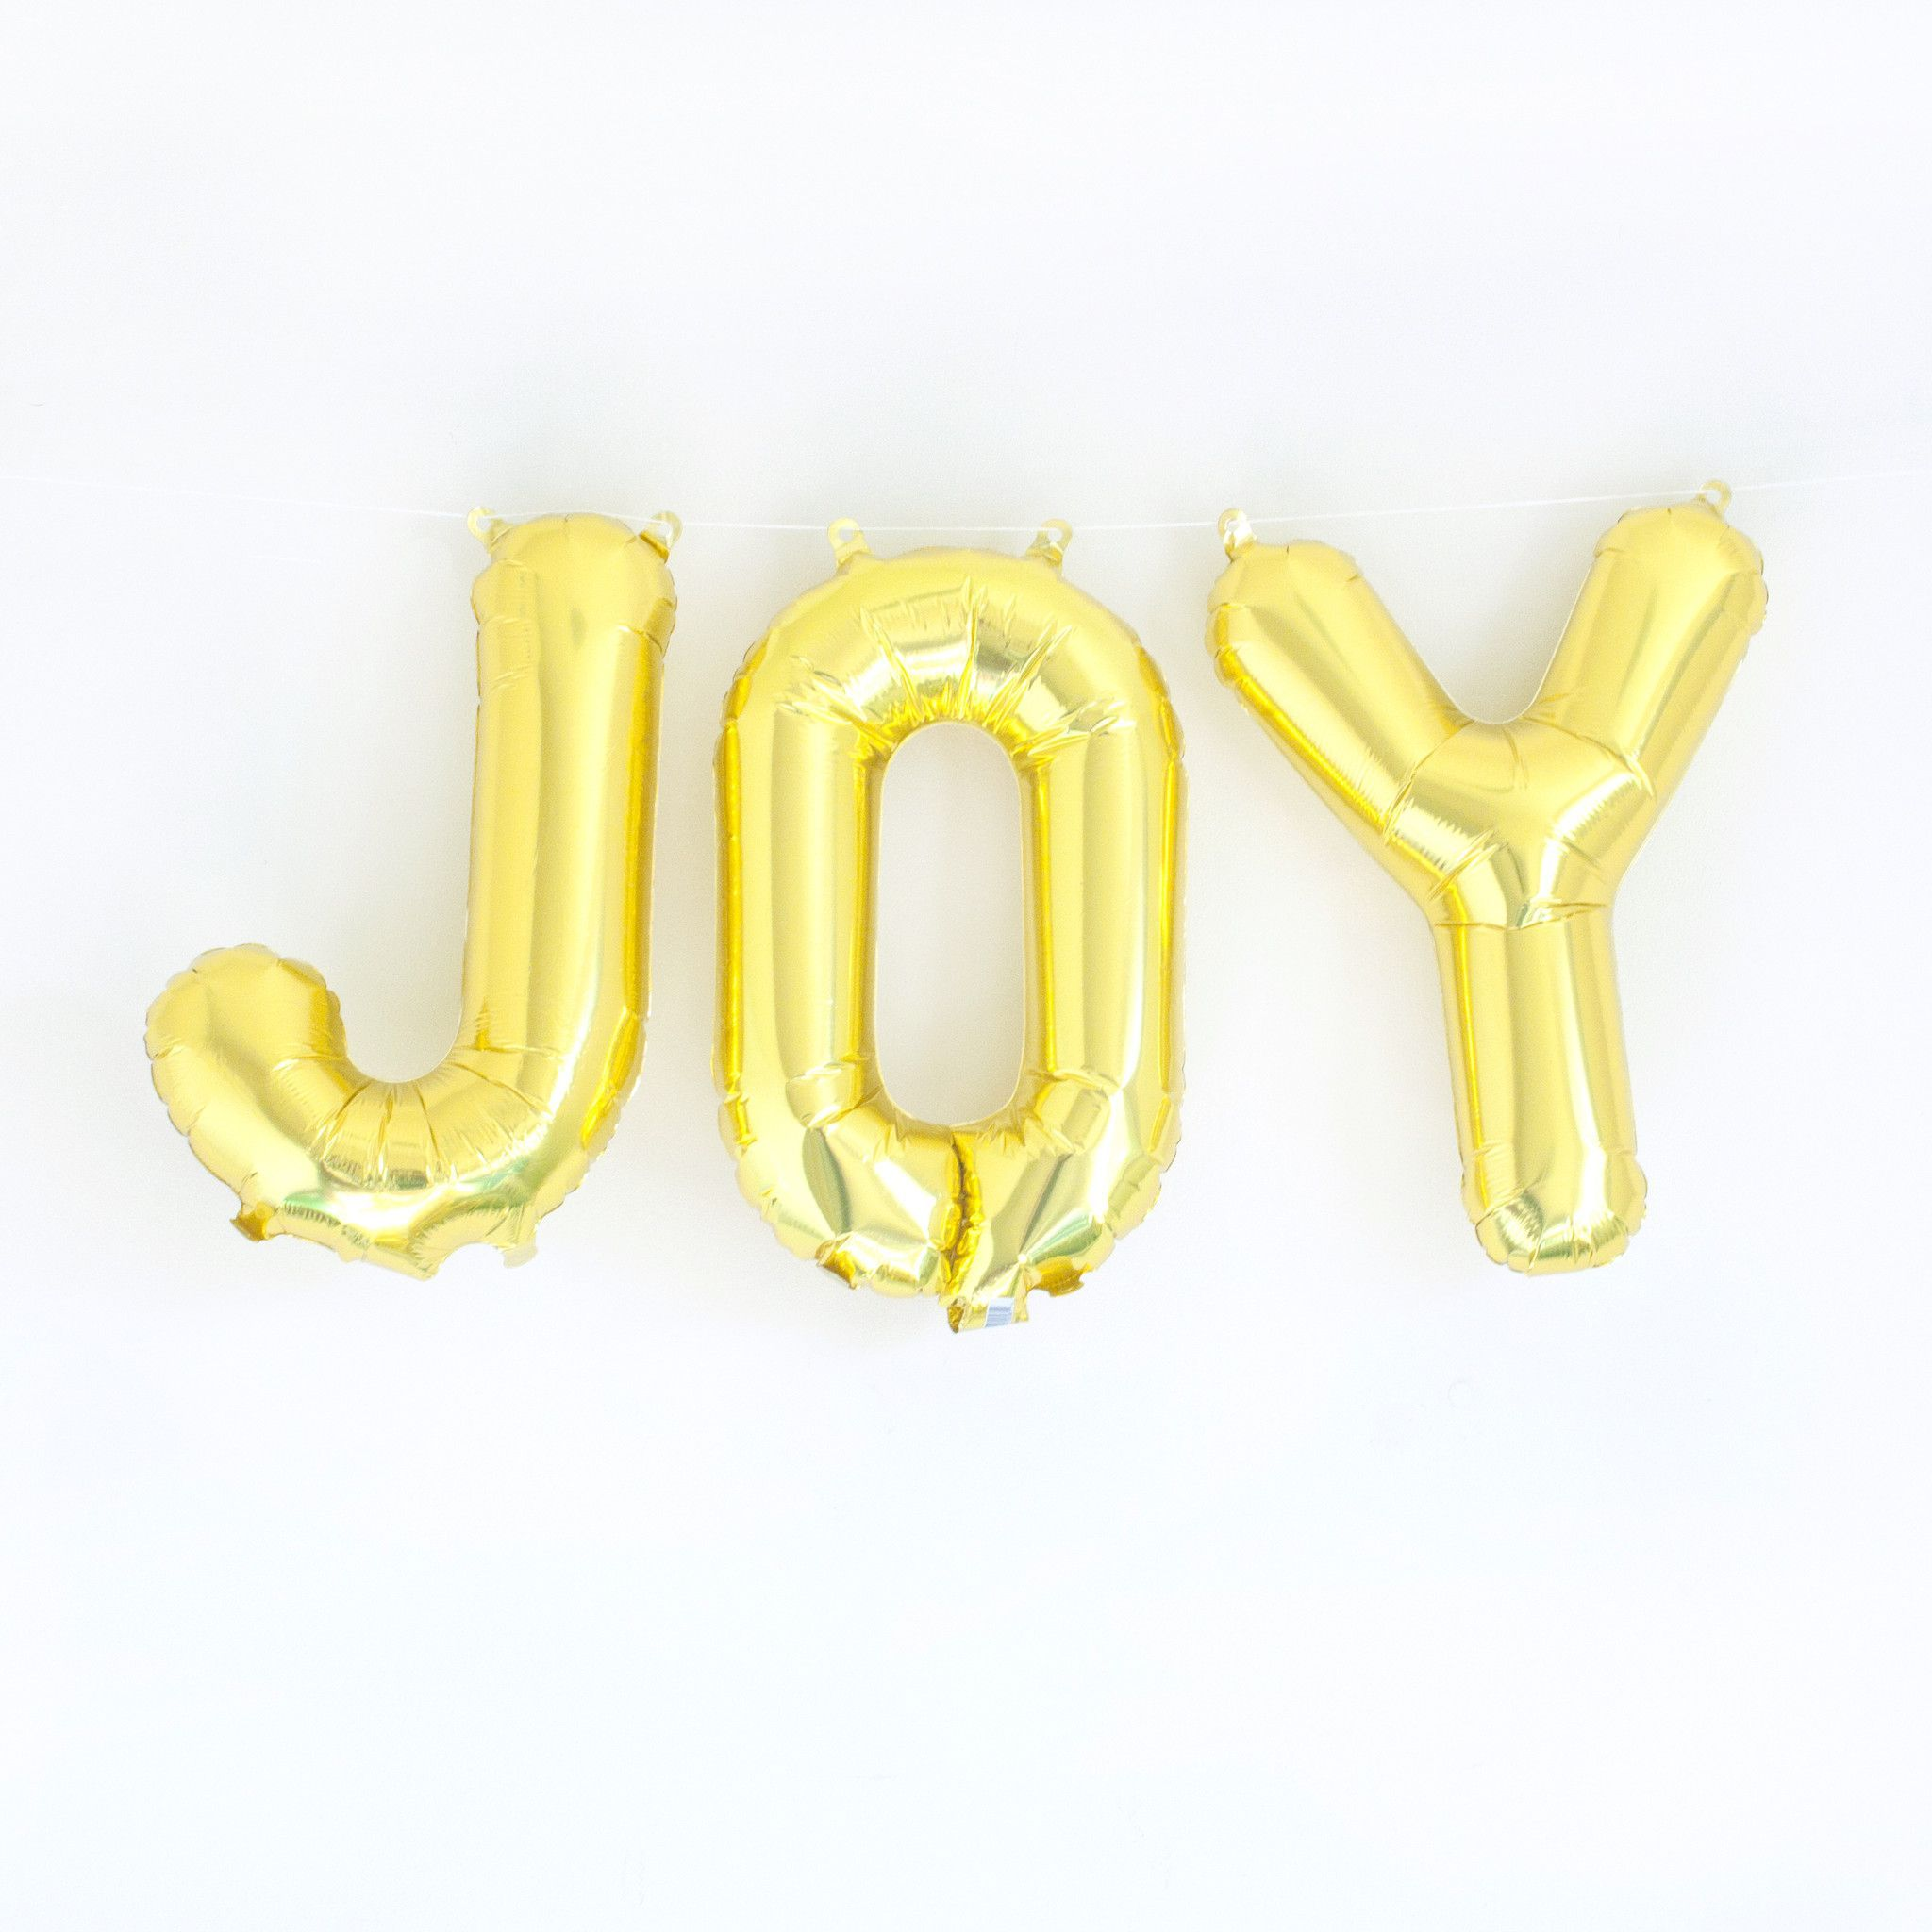 Add Our Joy Gold Or Silver Mylar Letter Balloons To